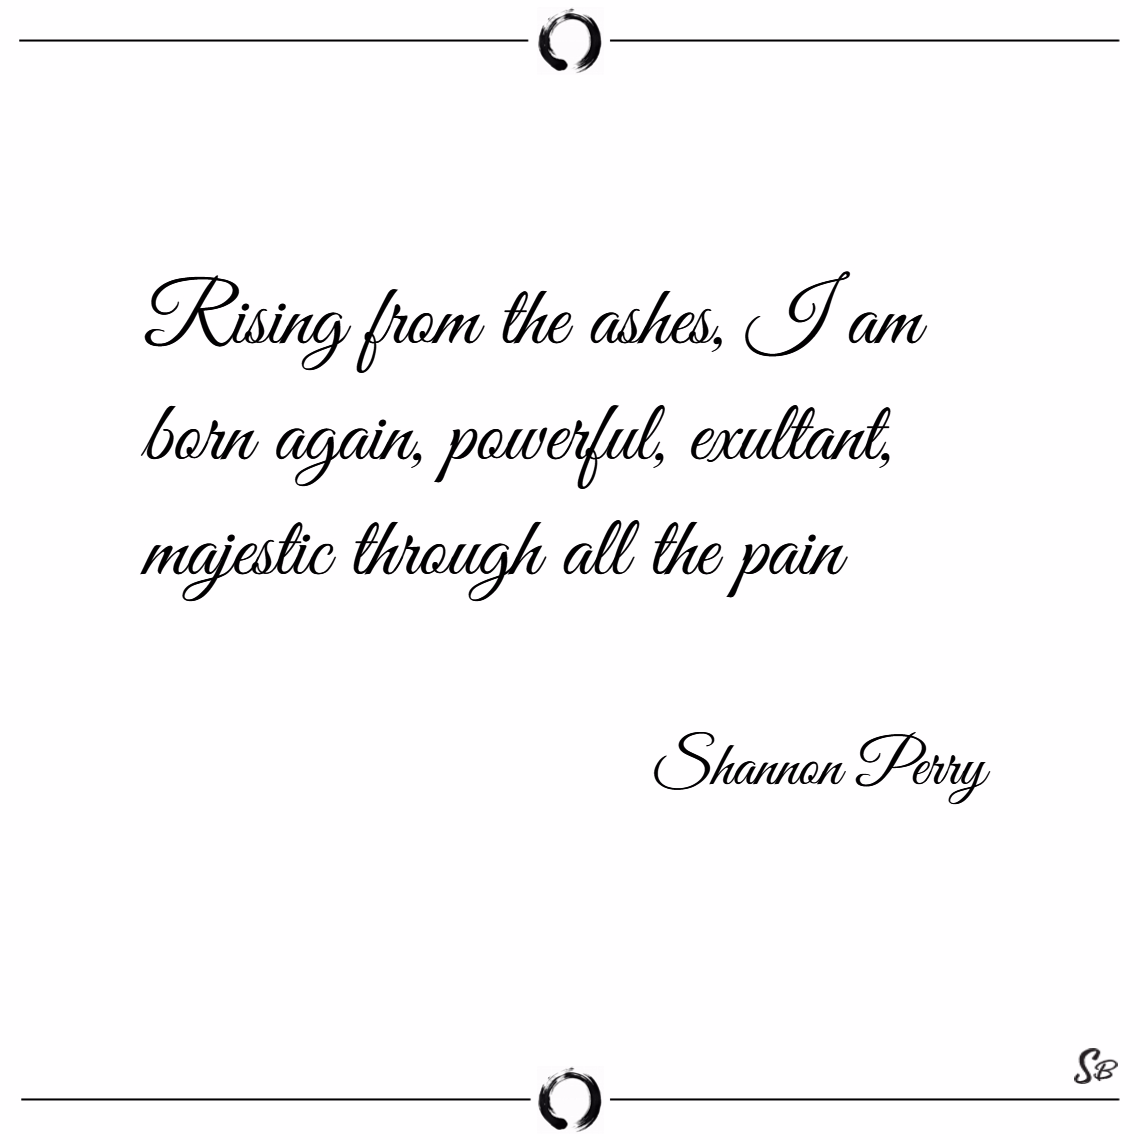 Rising from the ashes, i am born again, powerful, exultant, and majestic through all the pain. – shannon perry